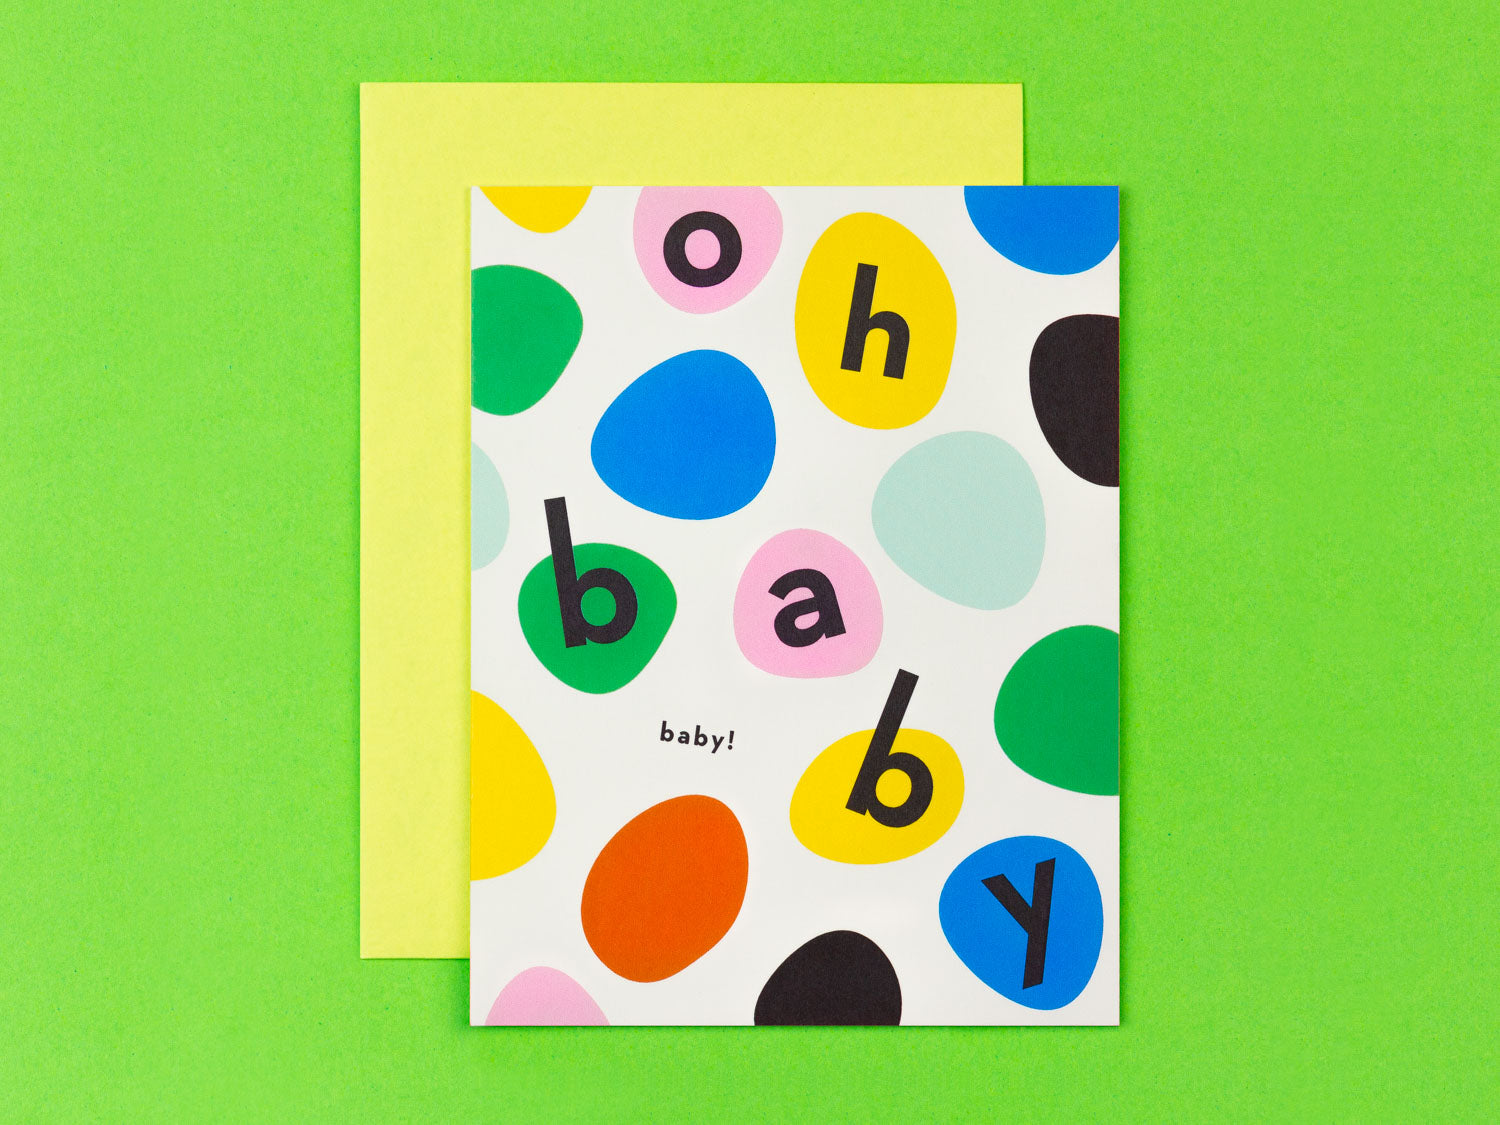 Oh Baby Baby! New baby congrats card with colorful bouncing dots by My Darlin' @mydarlin_bk